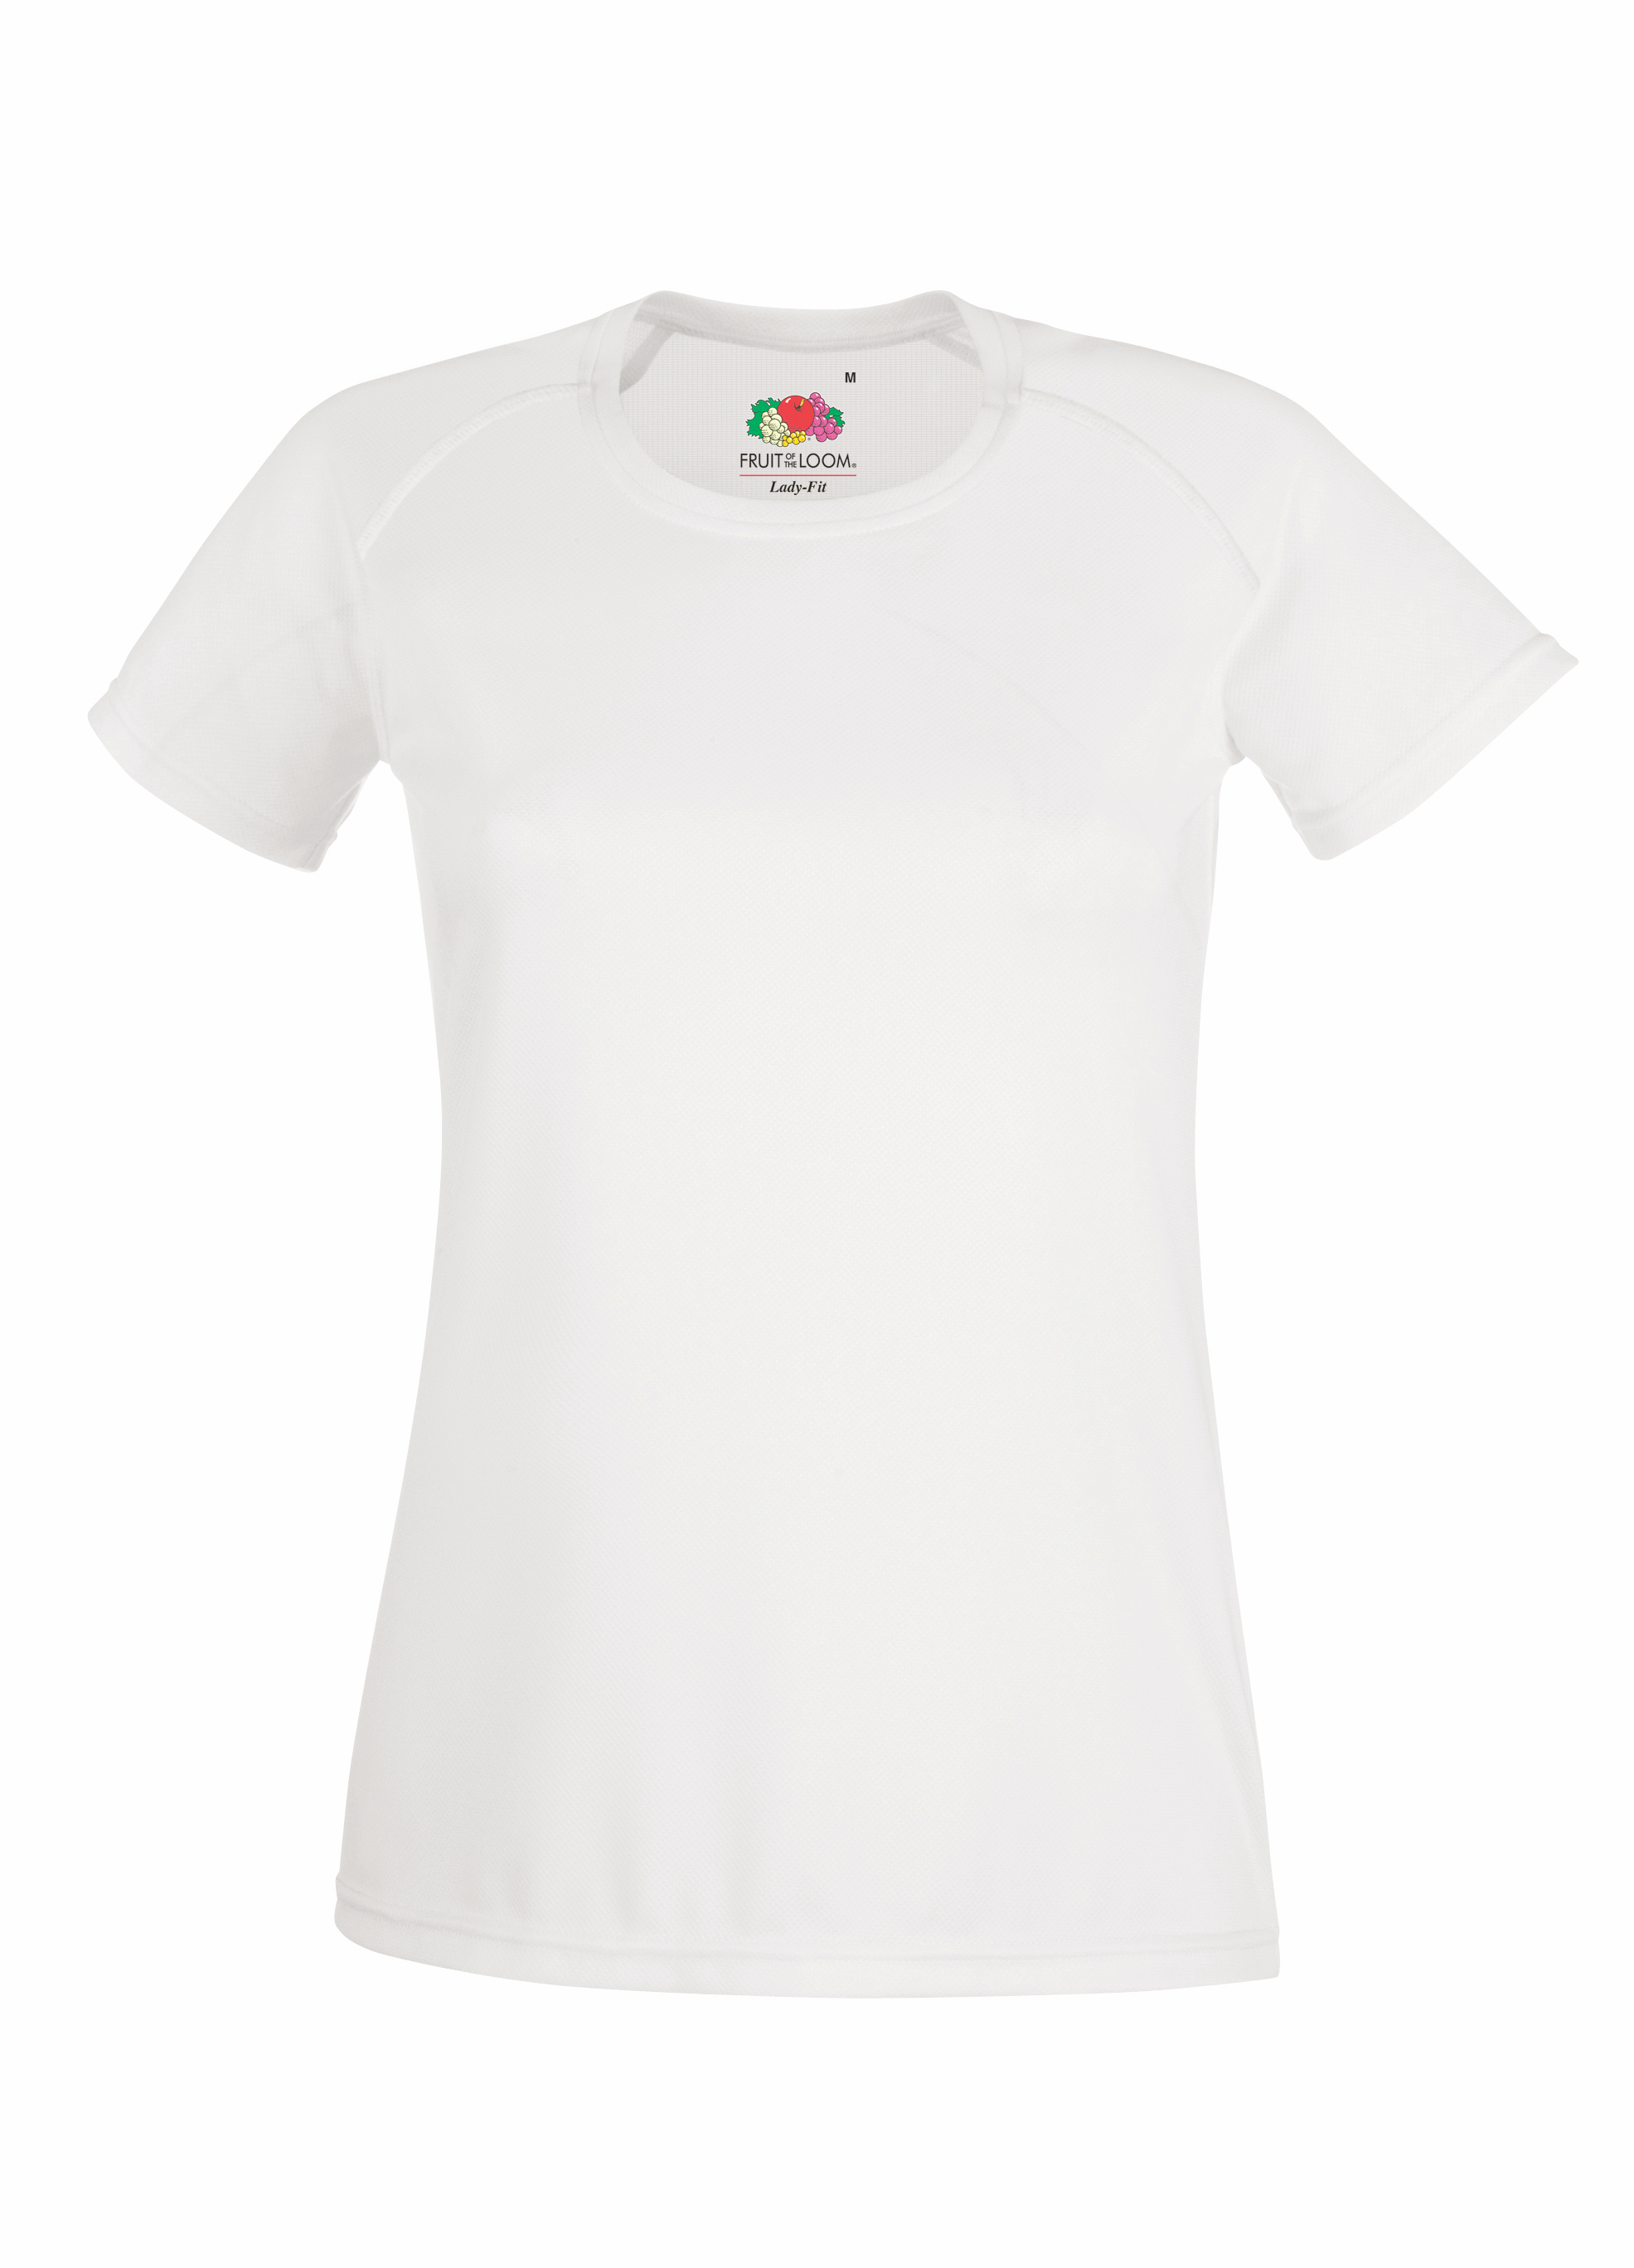 Lady fit performance T - White - XL